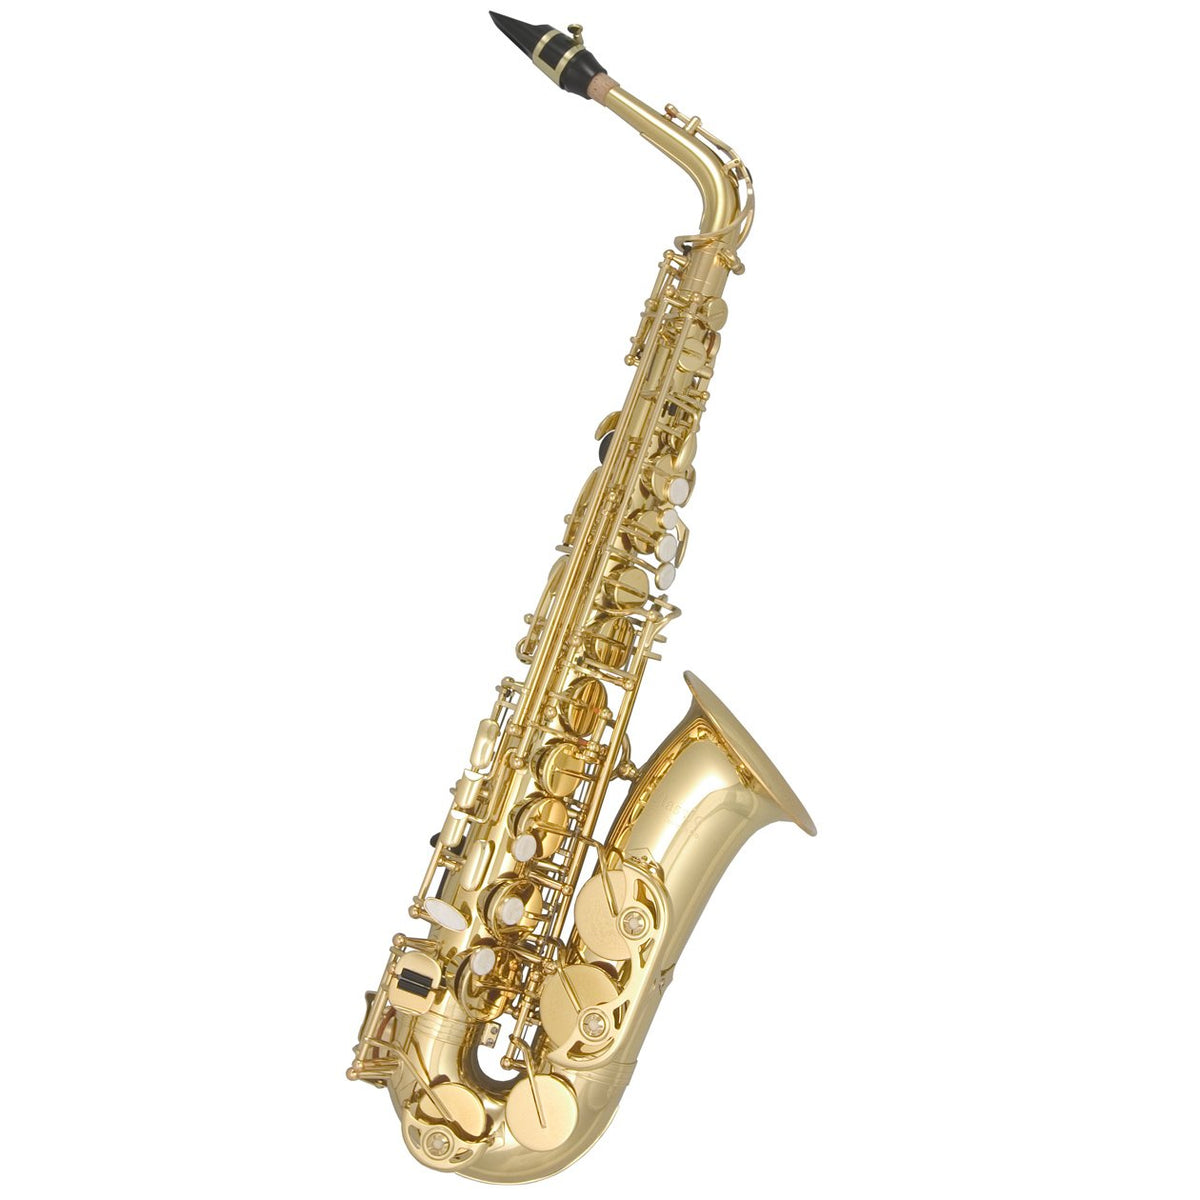 Trevor James - Classic Alto Saxophones-Saxophone-Trevor James-Gold Lacquer-Music Elements